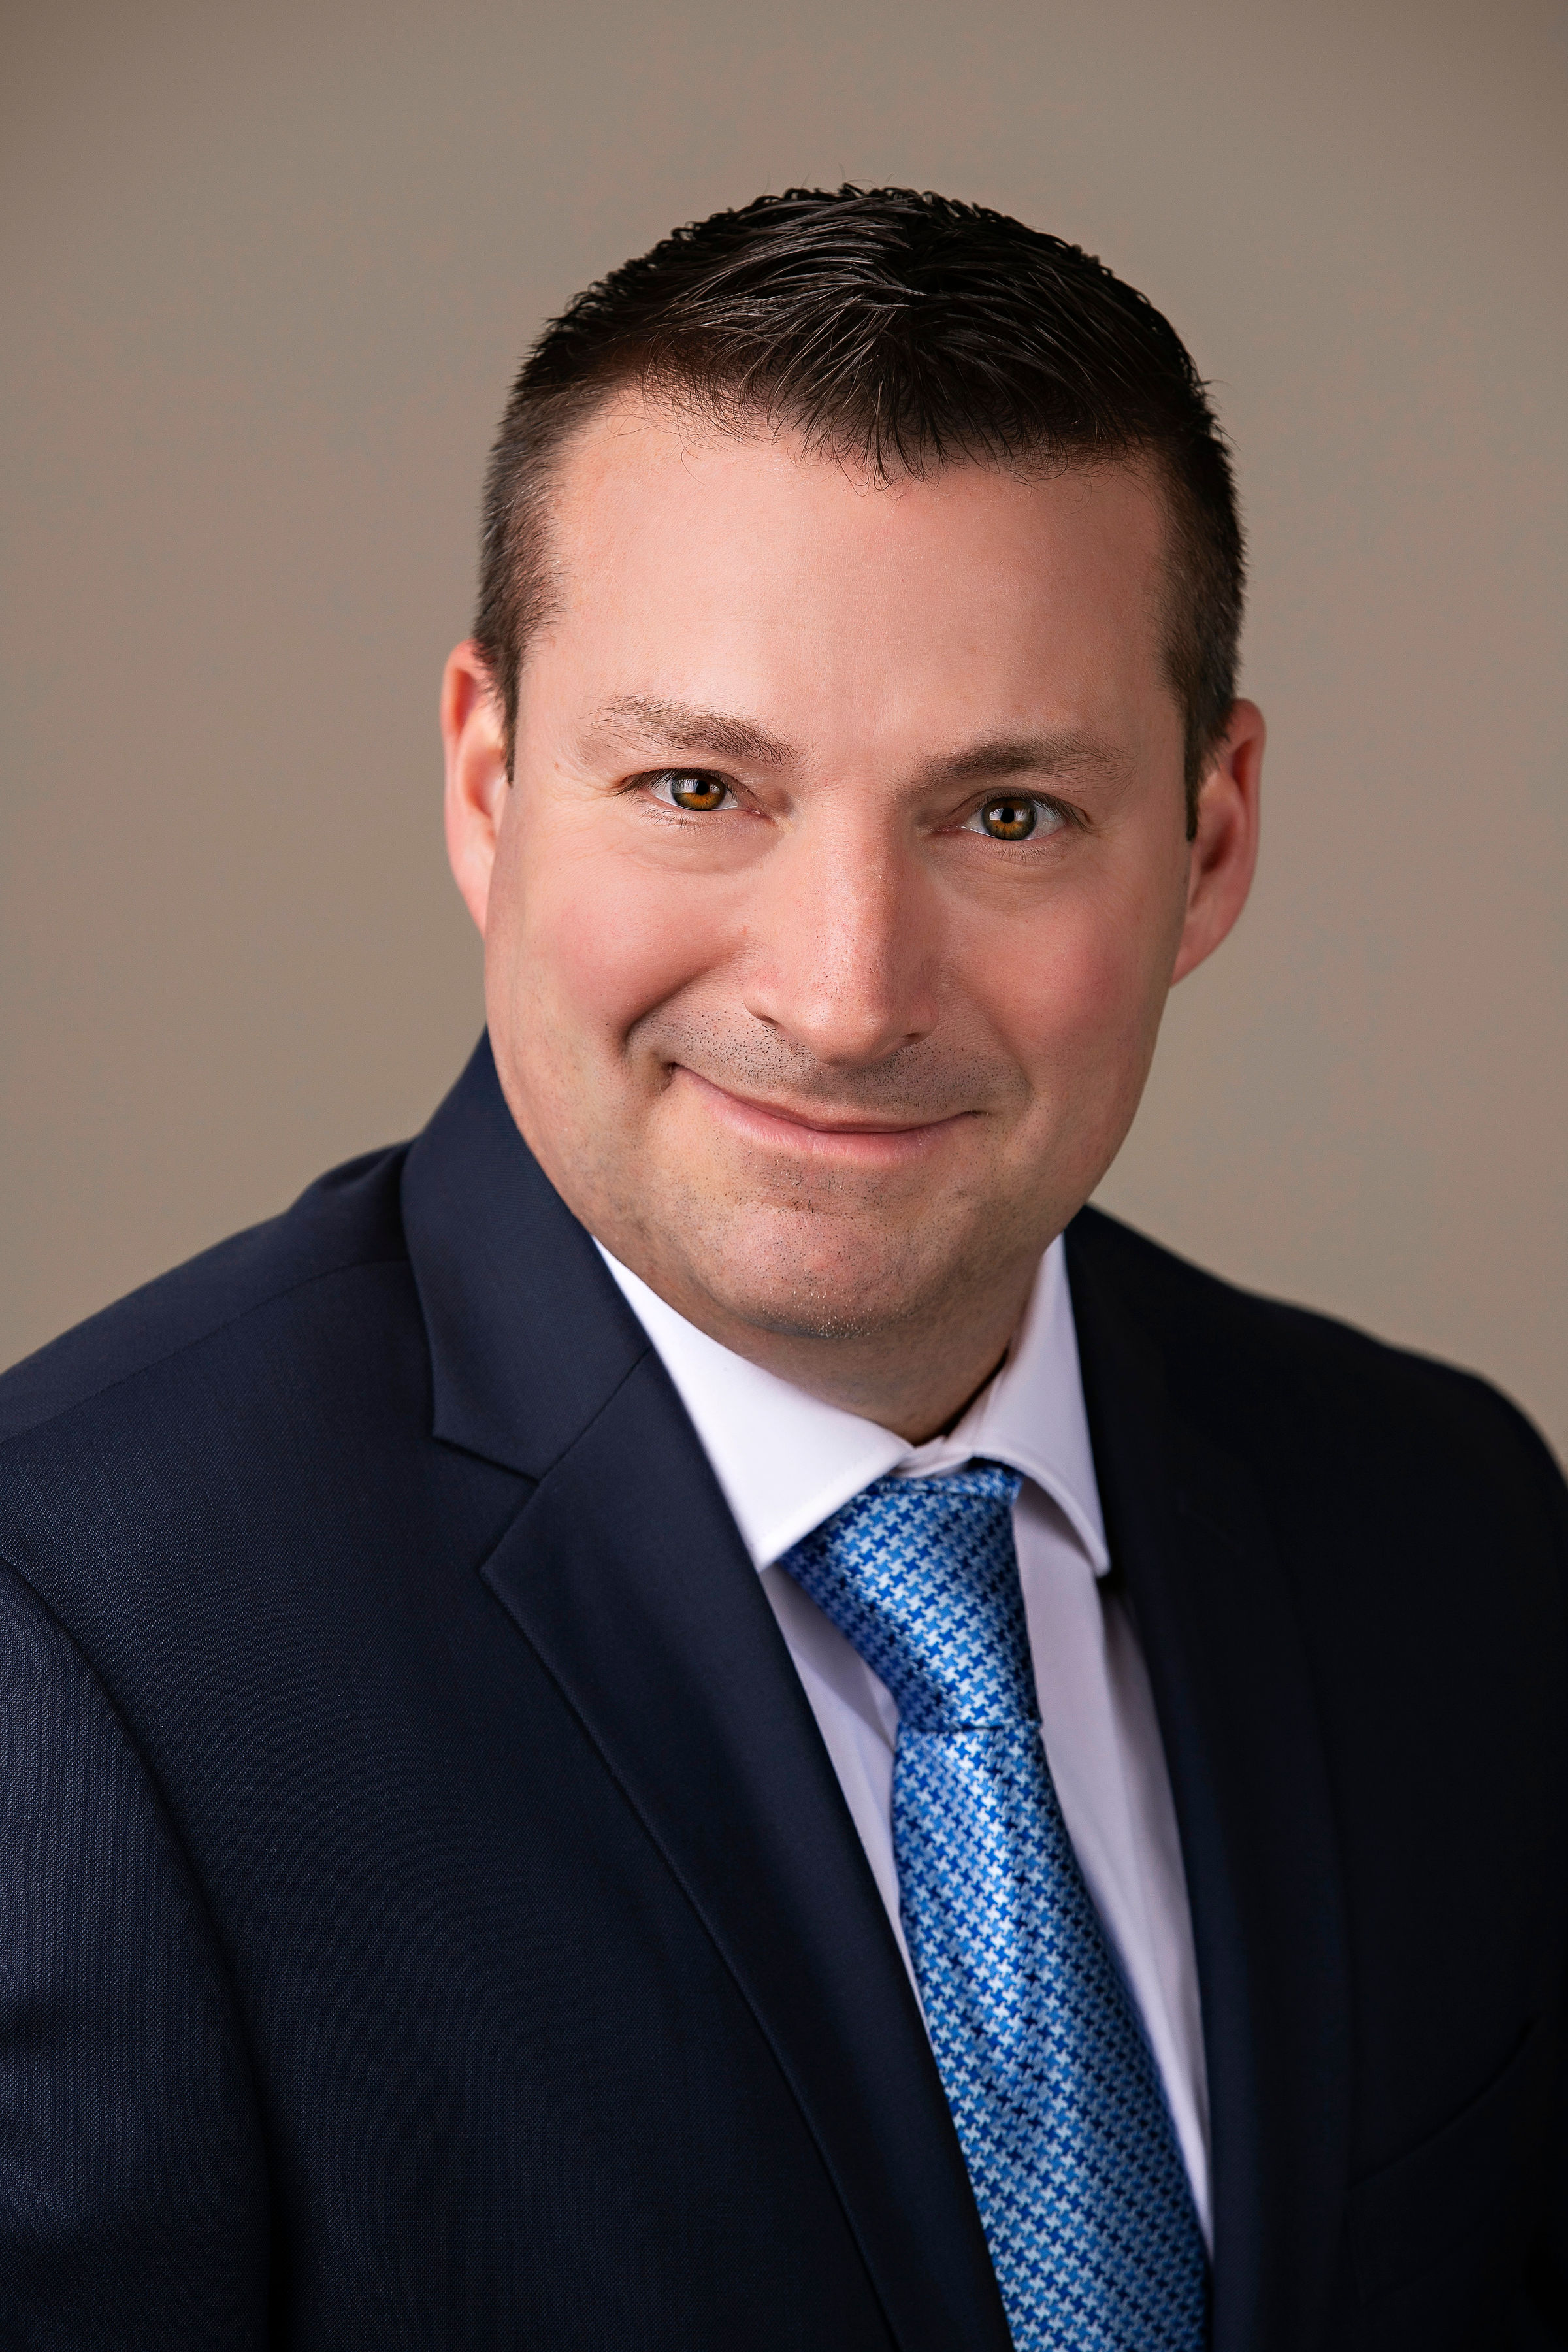 Dustin Padgett, financial advisor and wealth manager.